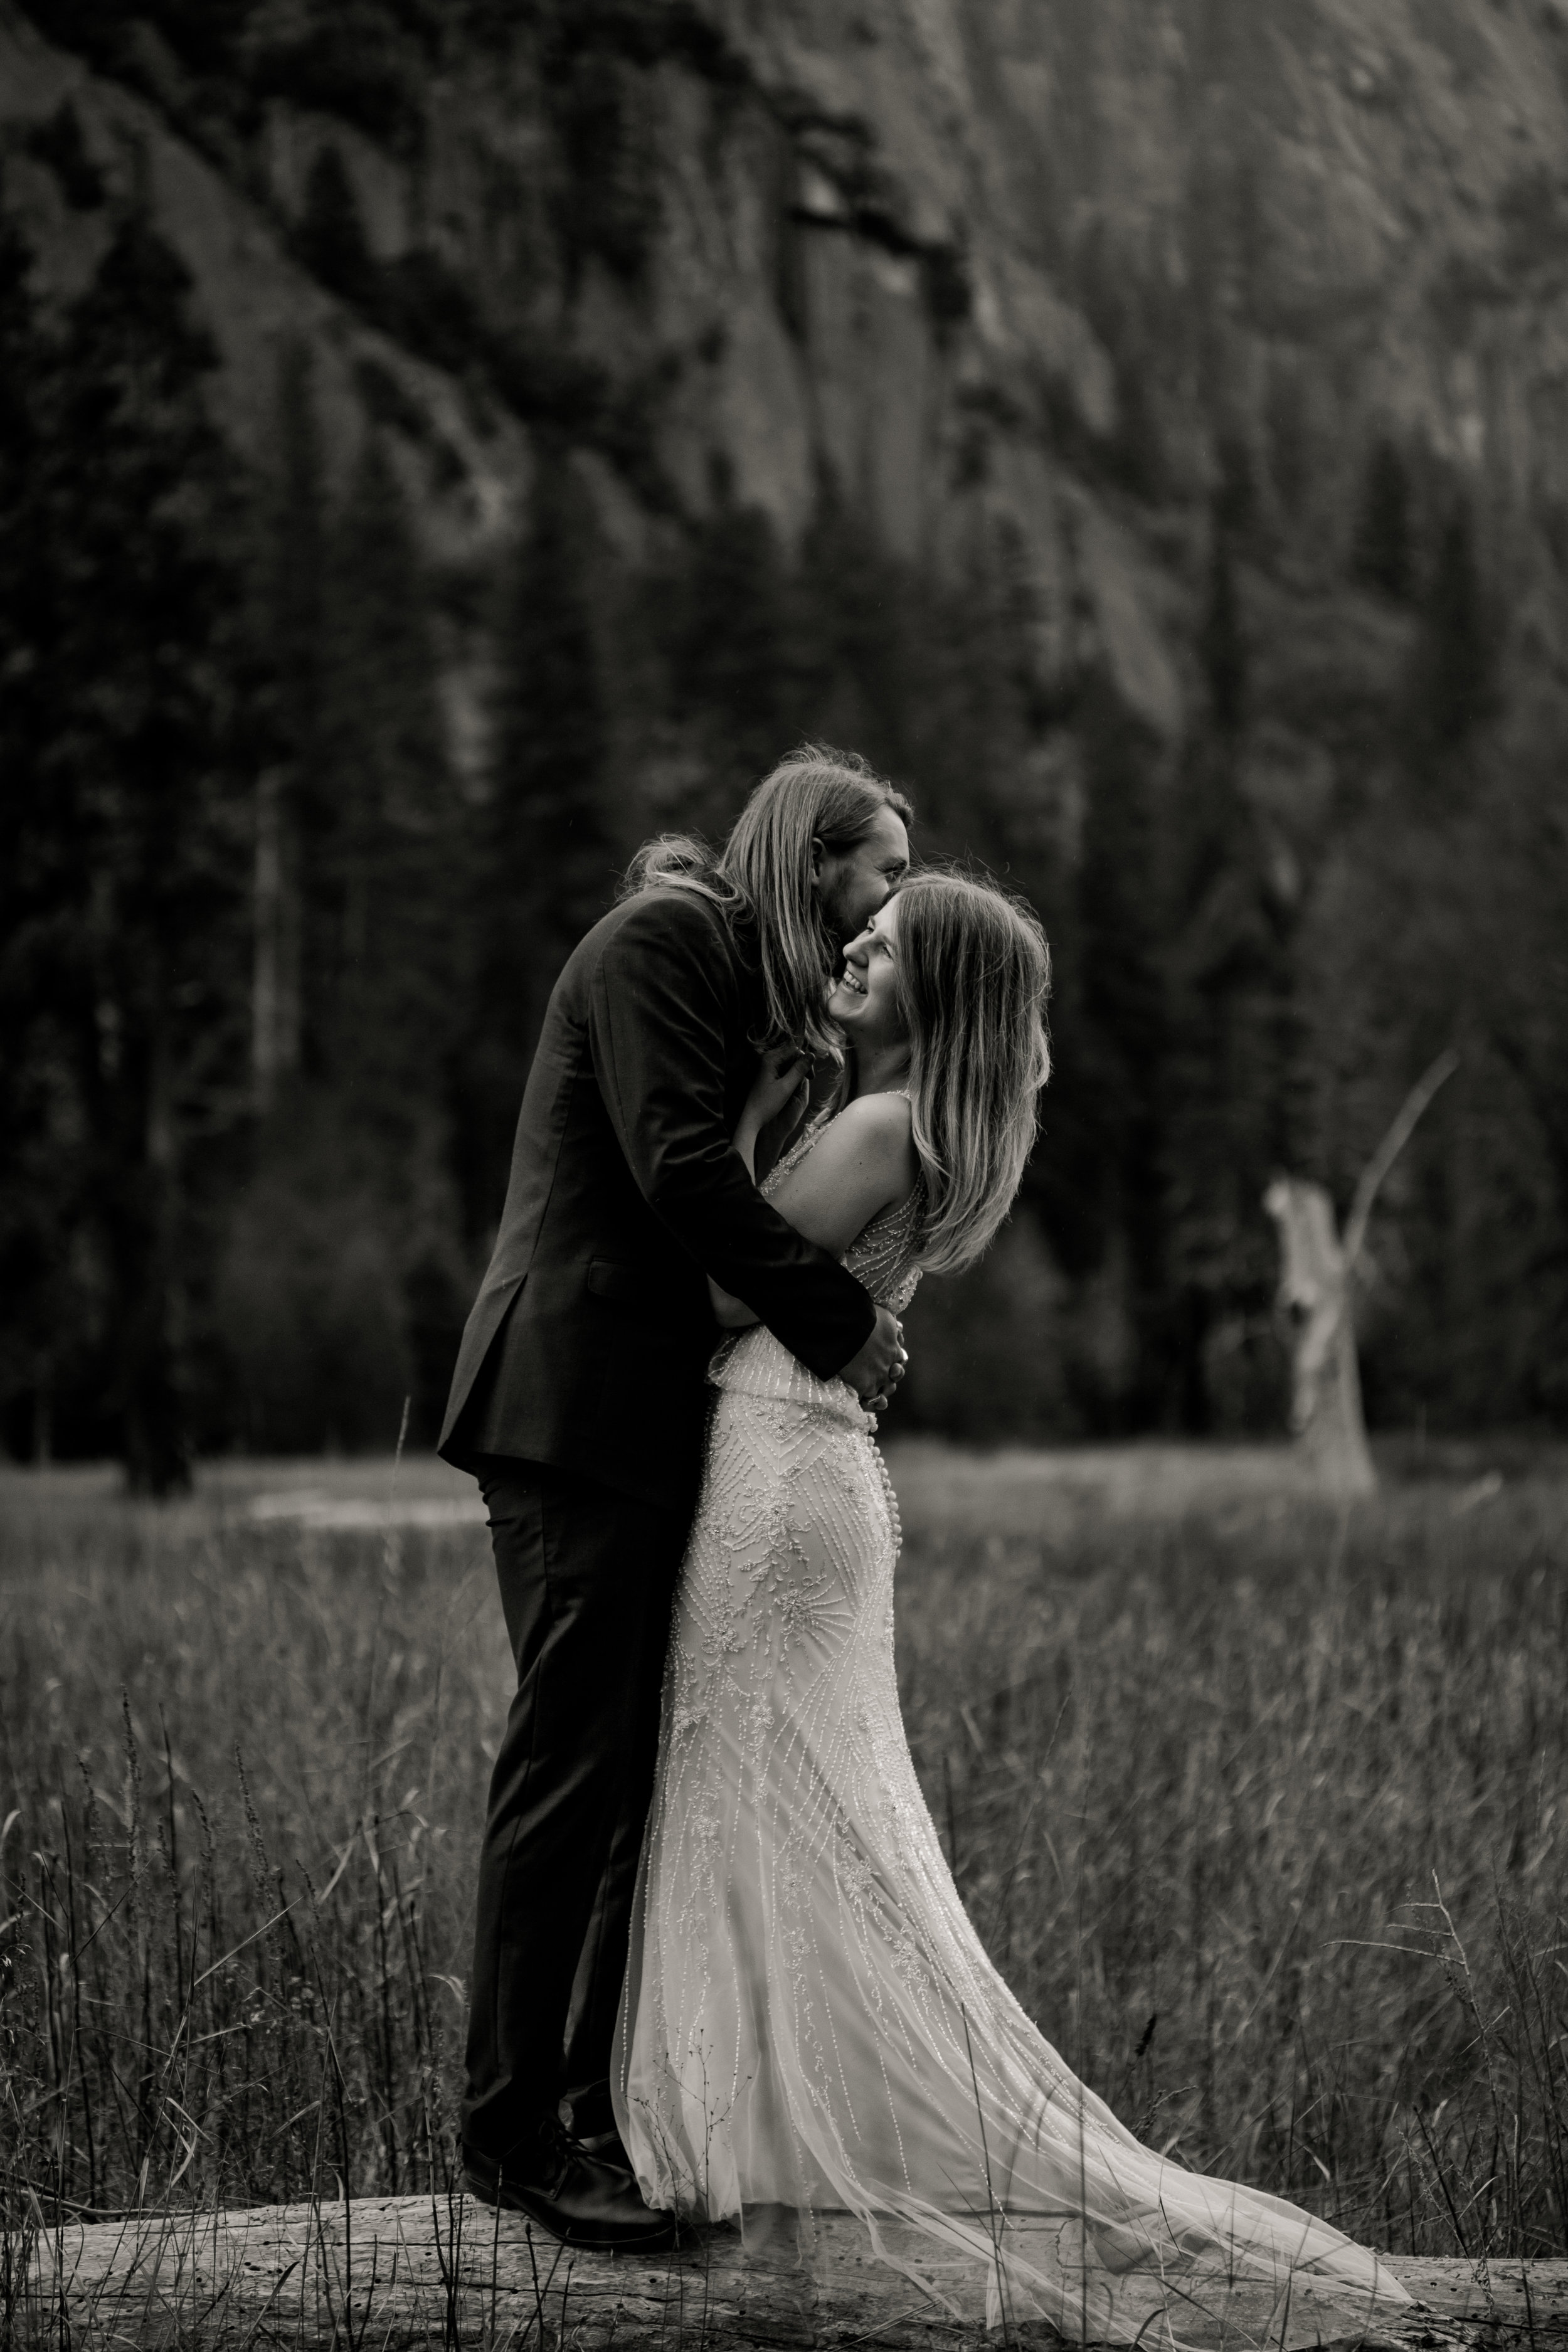 nicole-daacke-photography-yousemite-national-park-elopement-photographer-winter-cloud-moody-elope-inspiration-yosemite-valley-tunnel-view-winter-cloud-fog-weather-wedding-photos-81.jpg